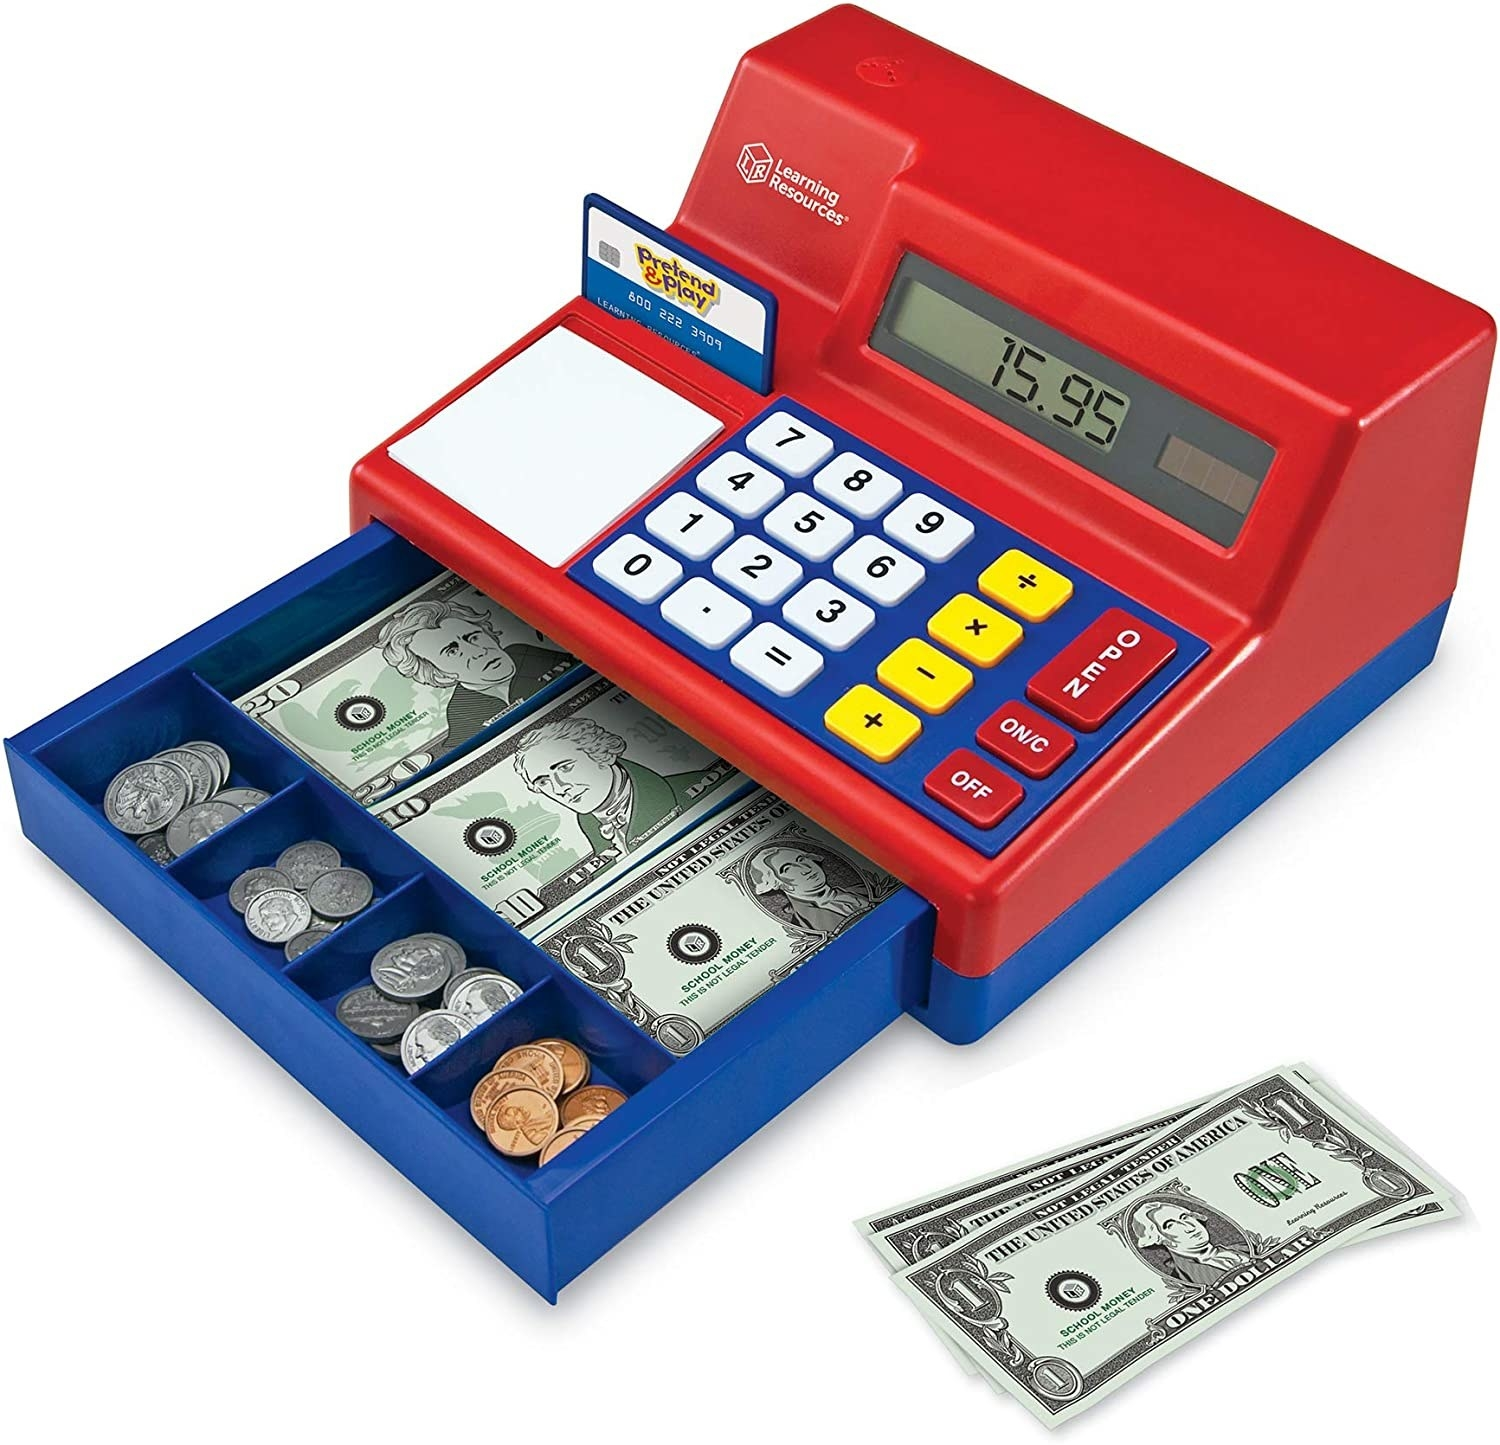 A toy cash register with play money